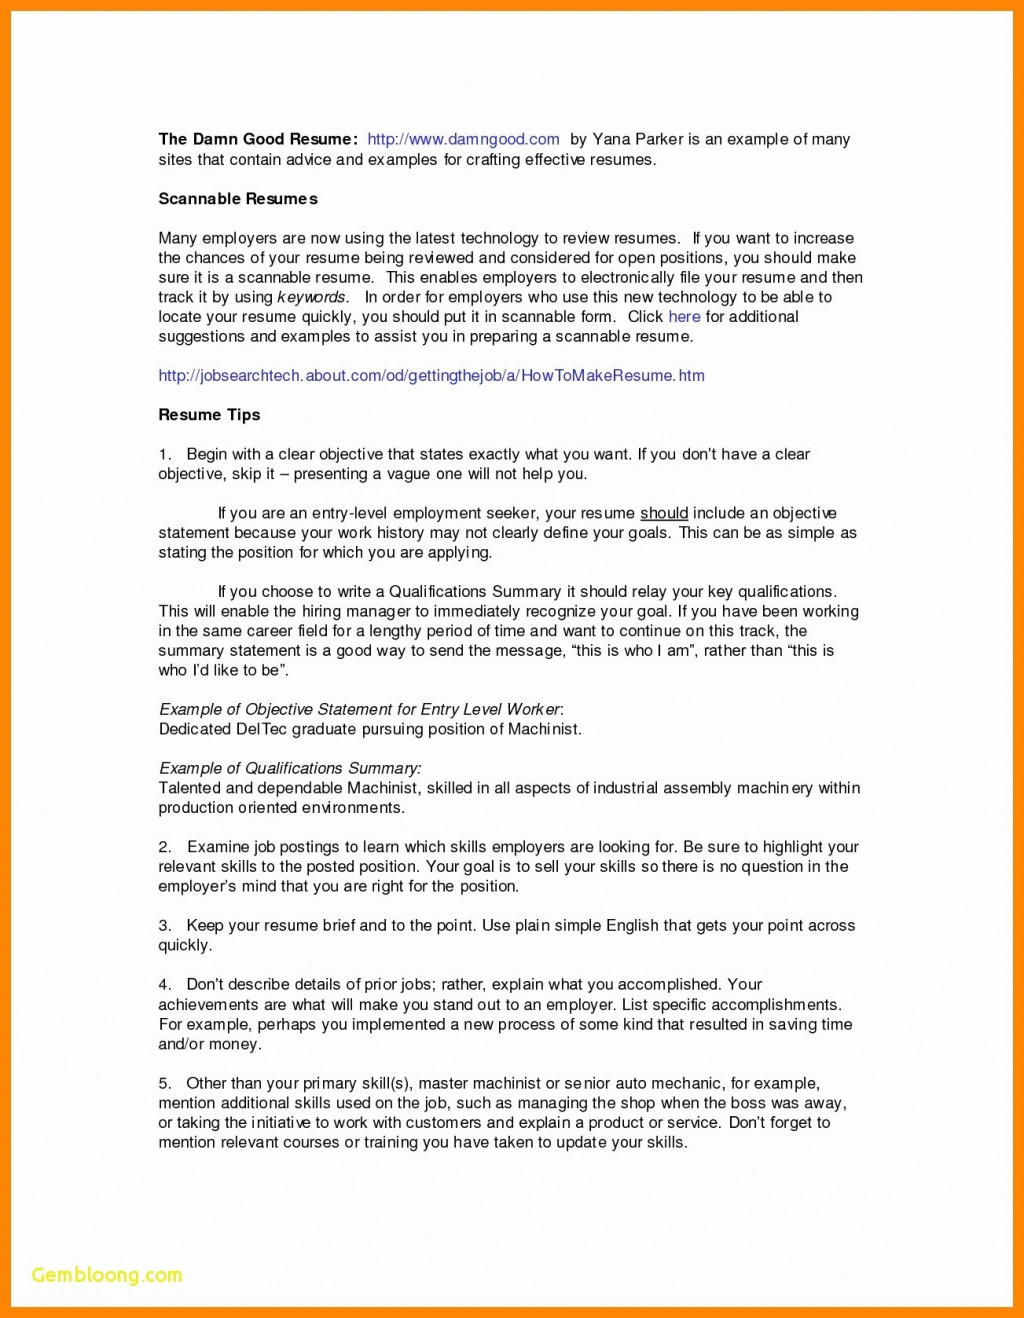 018 Pay For Research Paper Page New Resume Summary Examples Entry Level Inspirational Ceo Excellent Equal Work In India Performance Writing Large